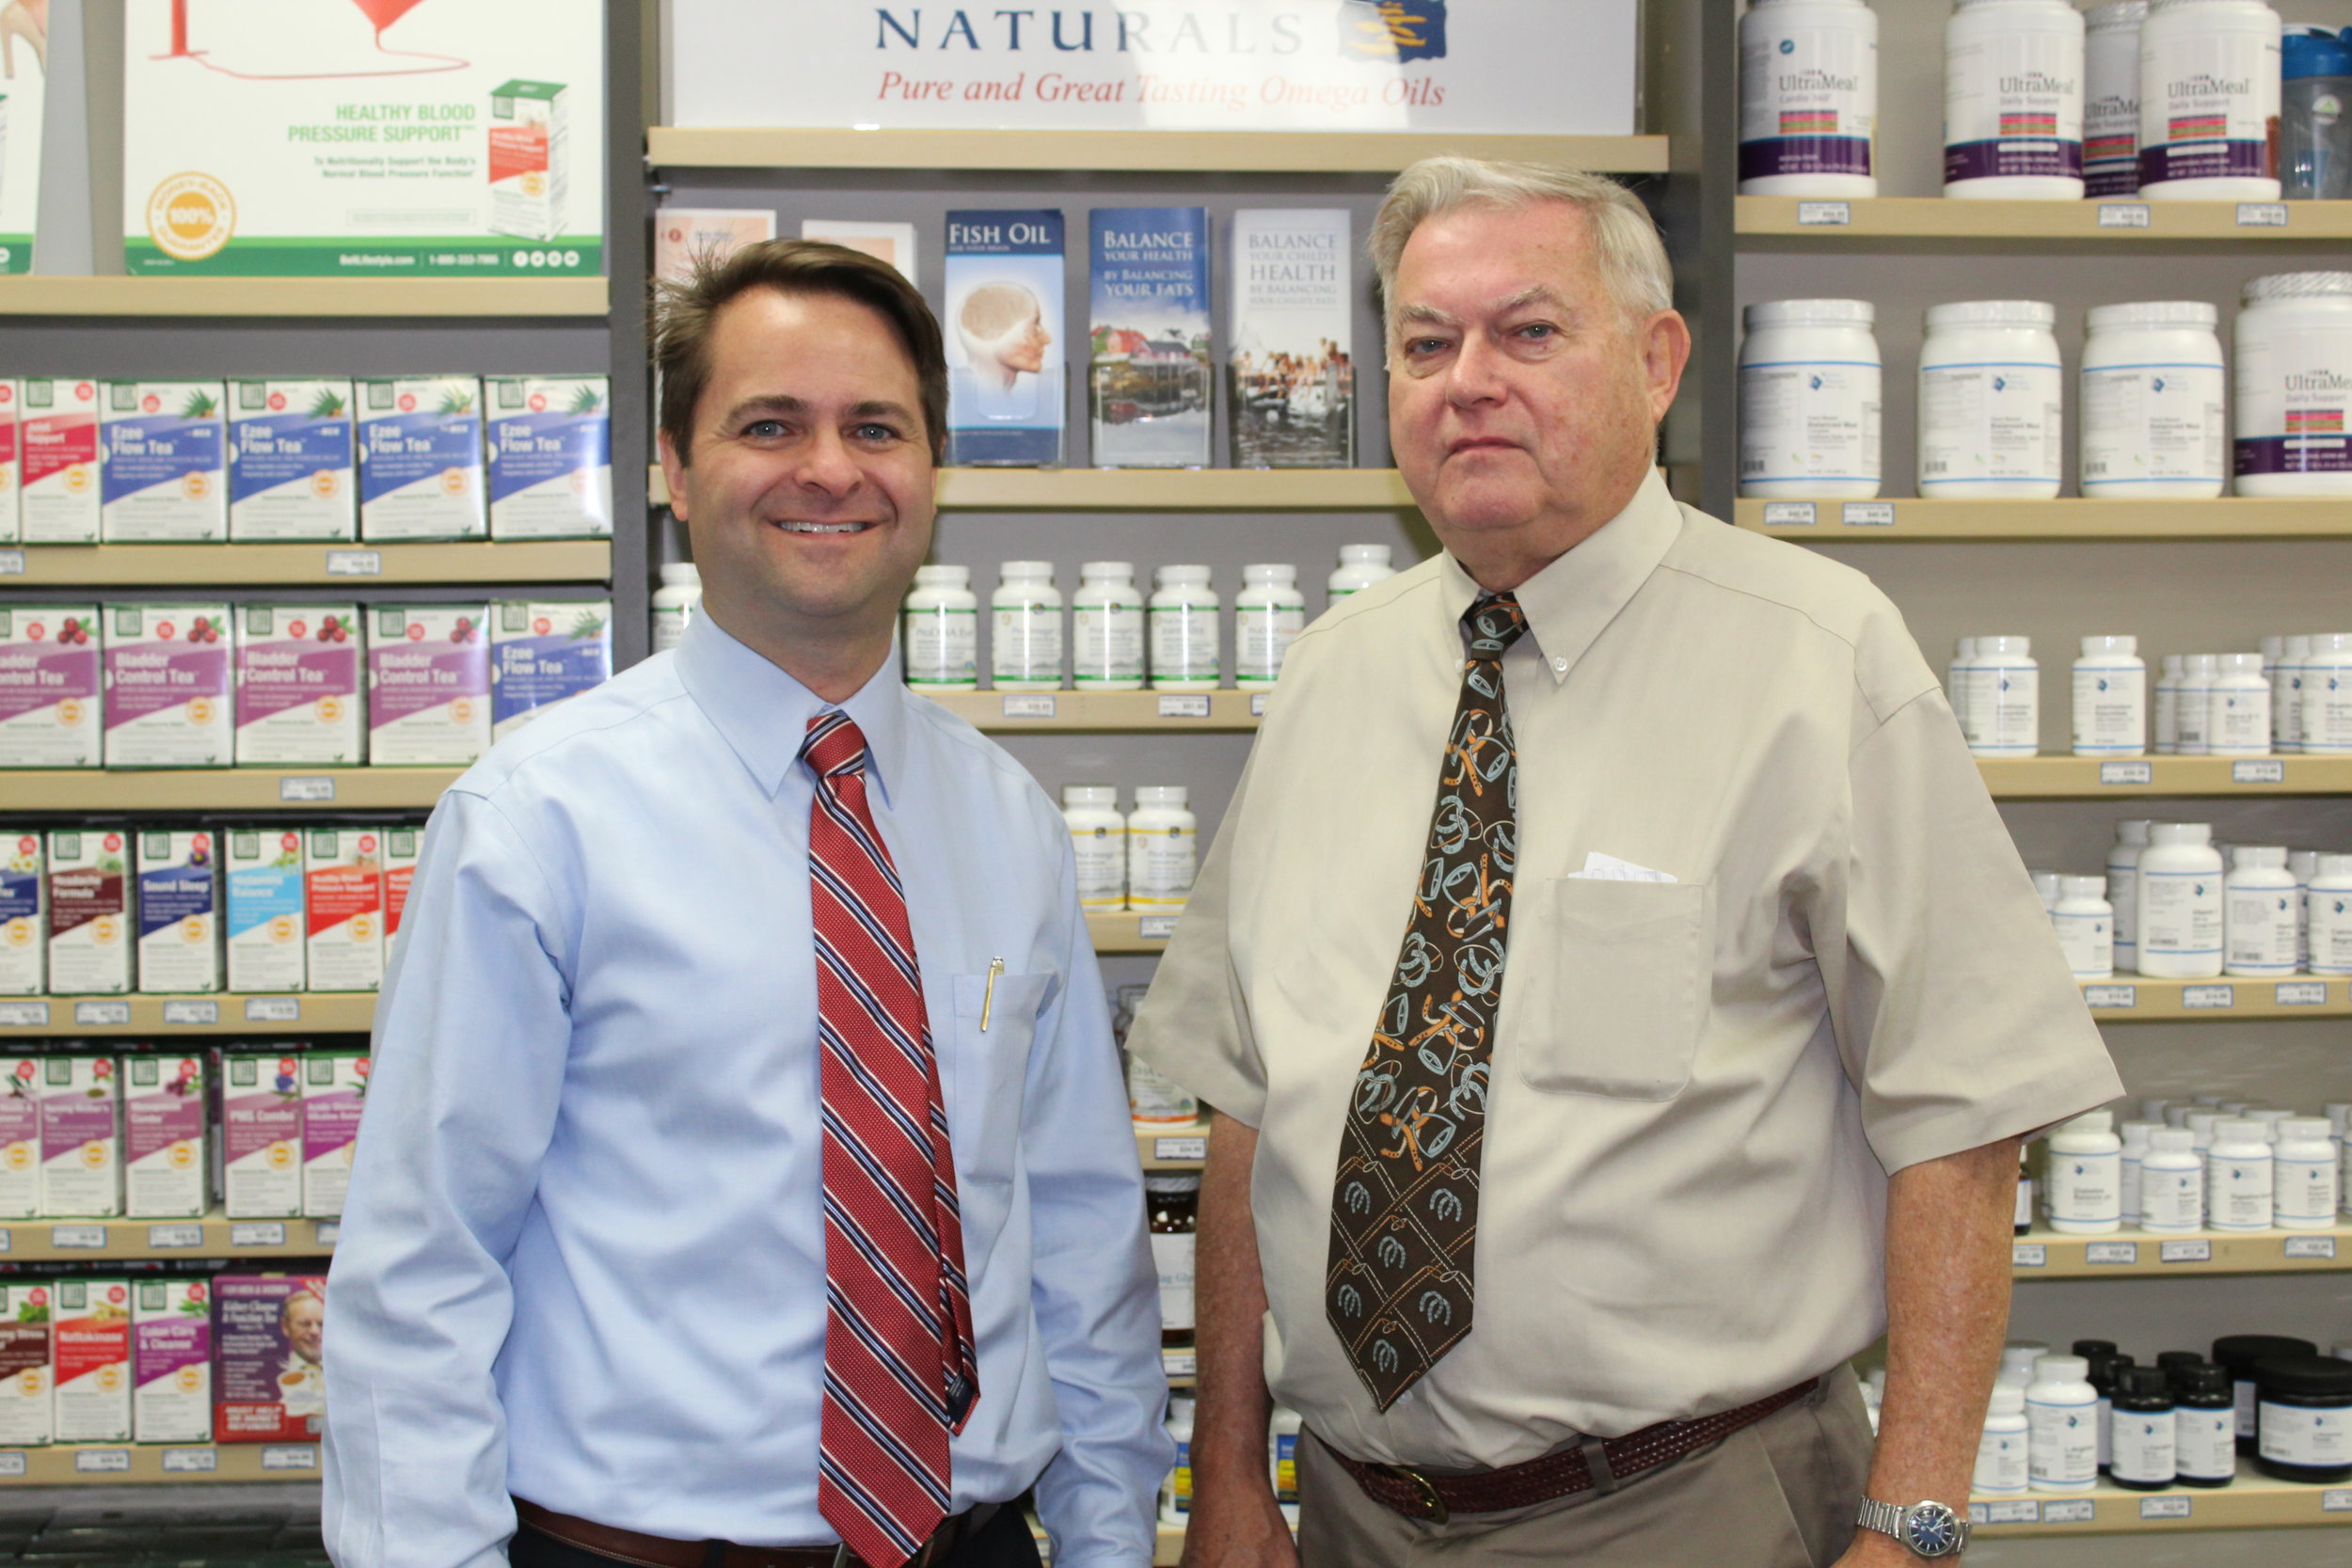 Health Matters show hosts Brad and Paul White.